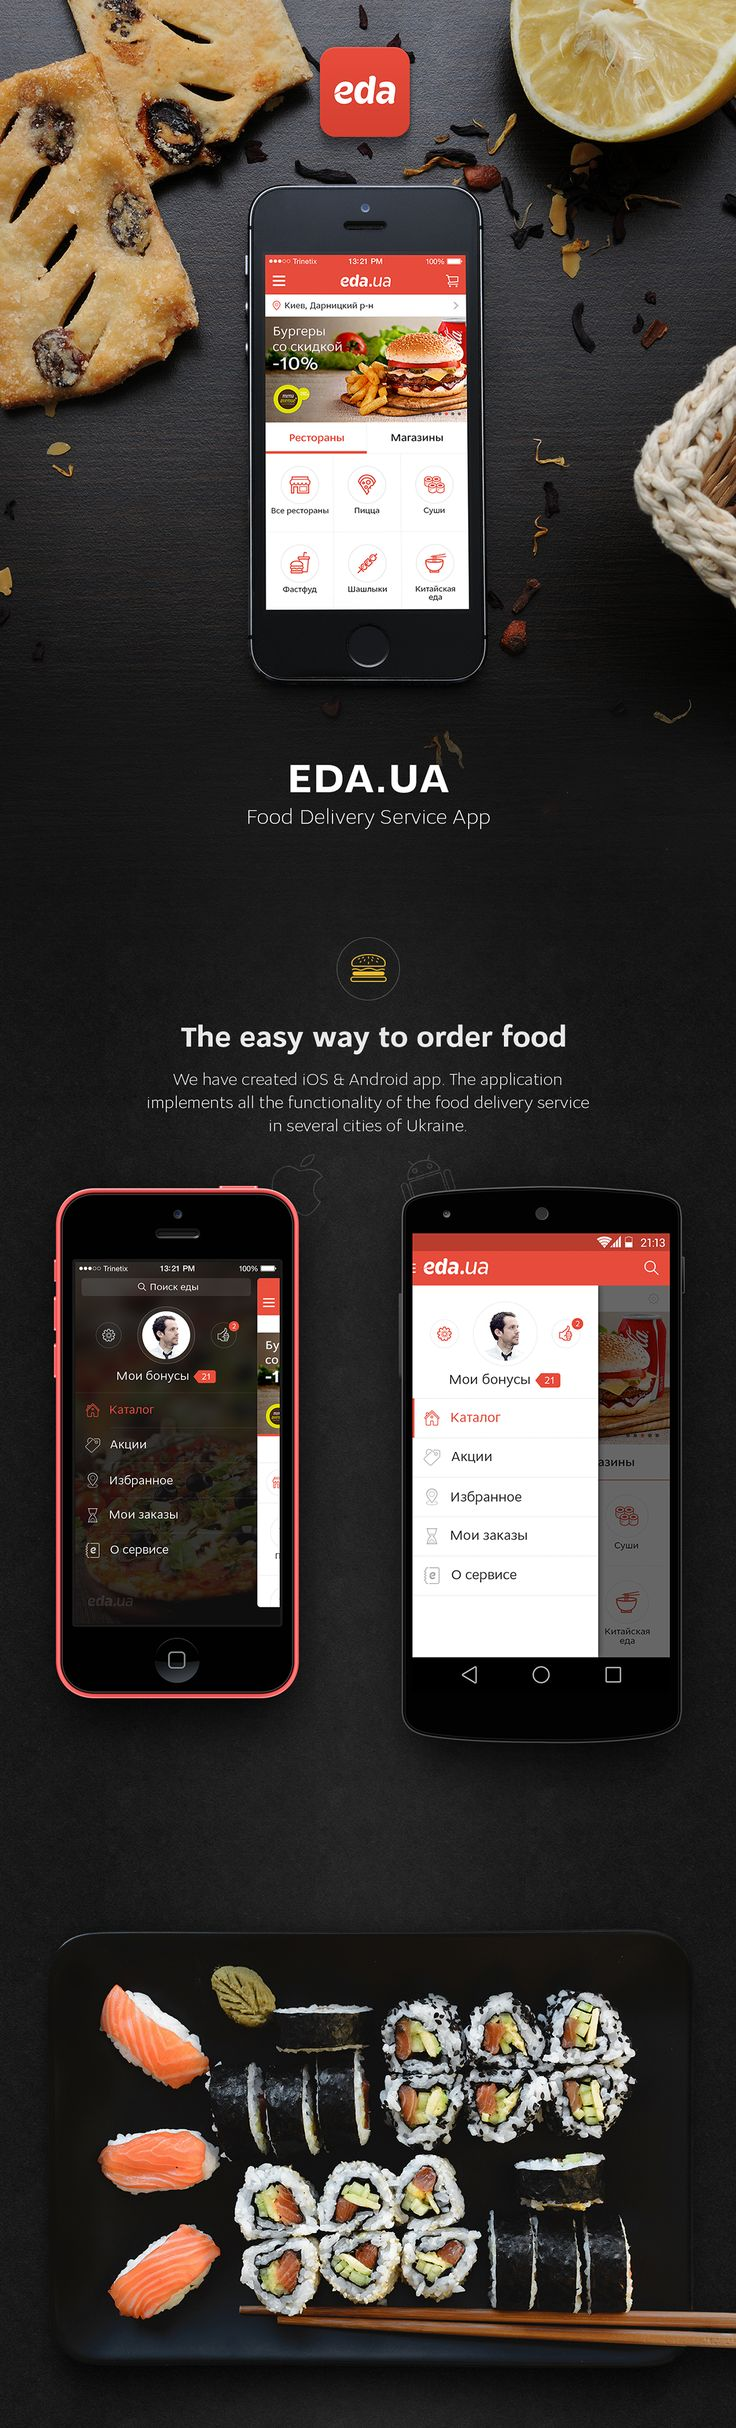 Eda.ua — Food Delivery App on App Design Served